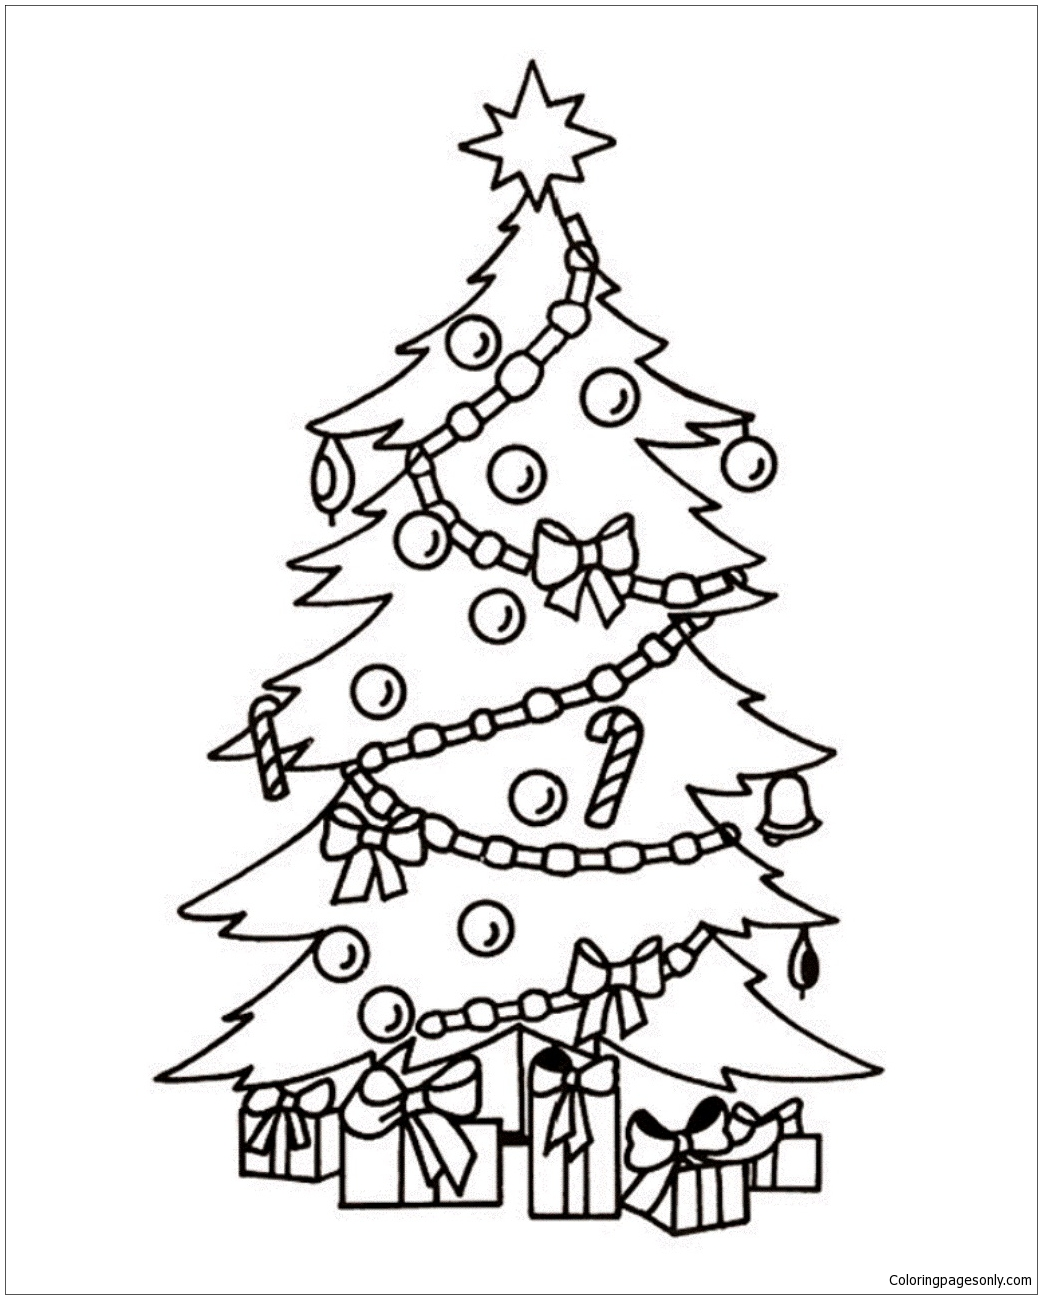 Christmas Tree And Presents 1 Coloring Page Free Coloring Pages